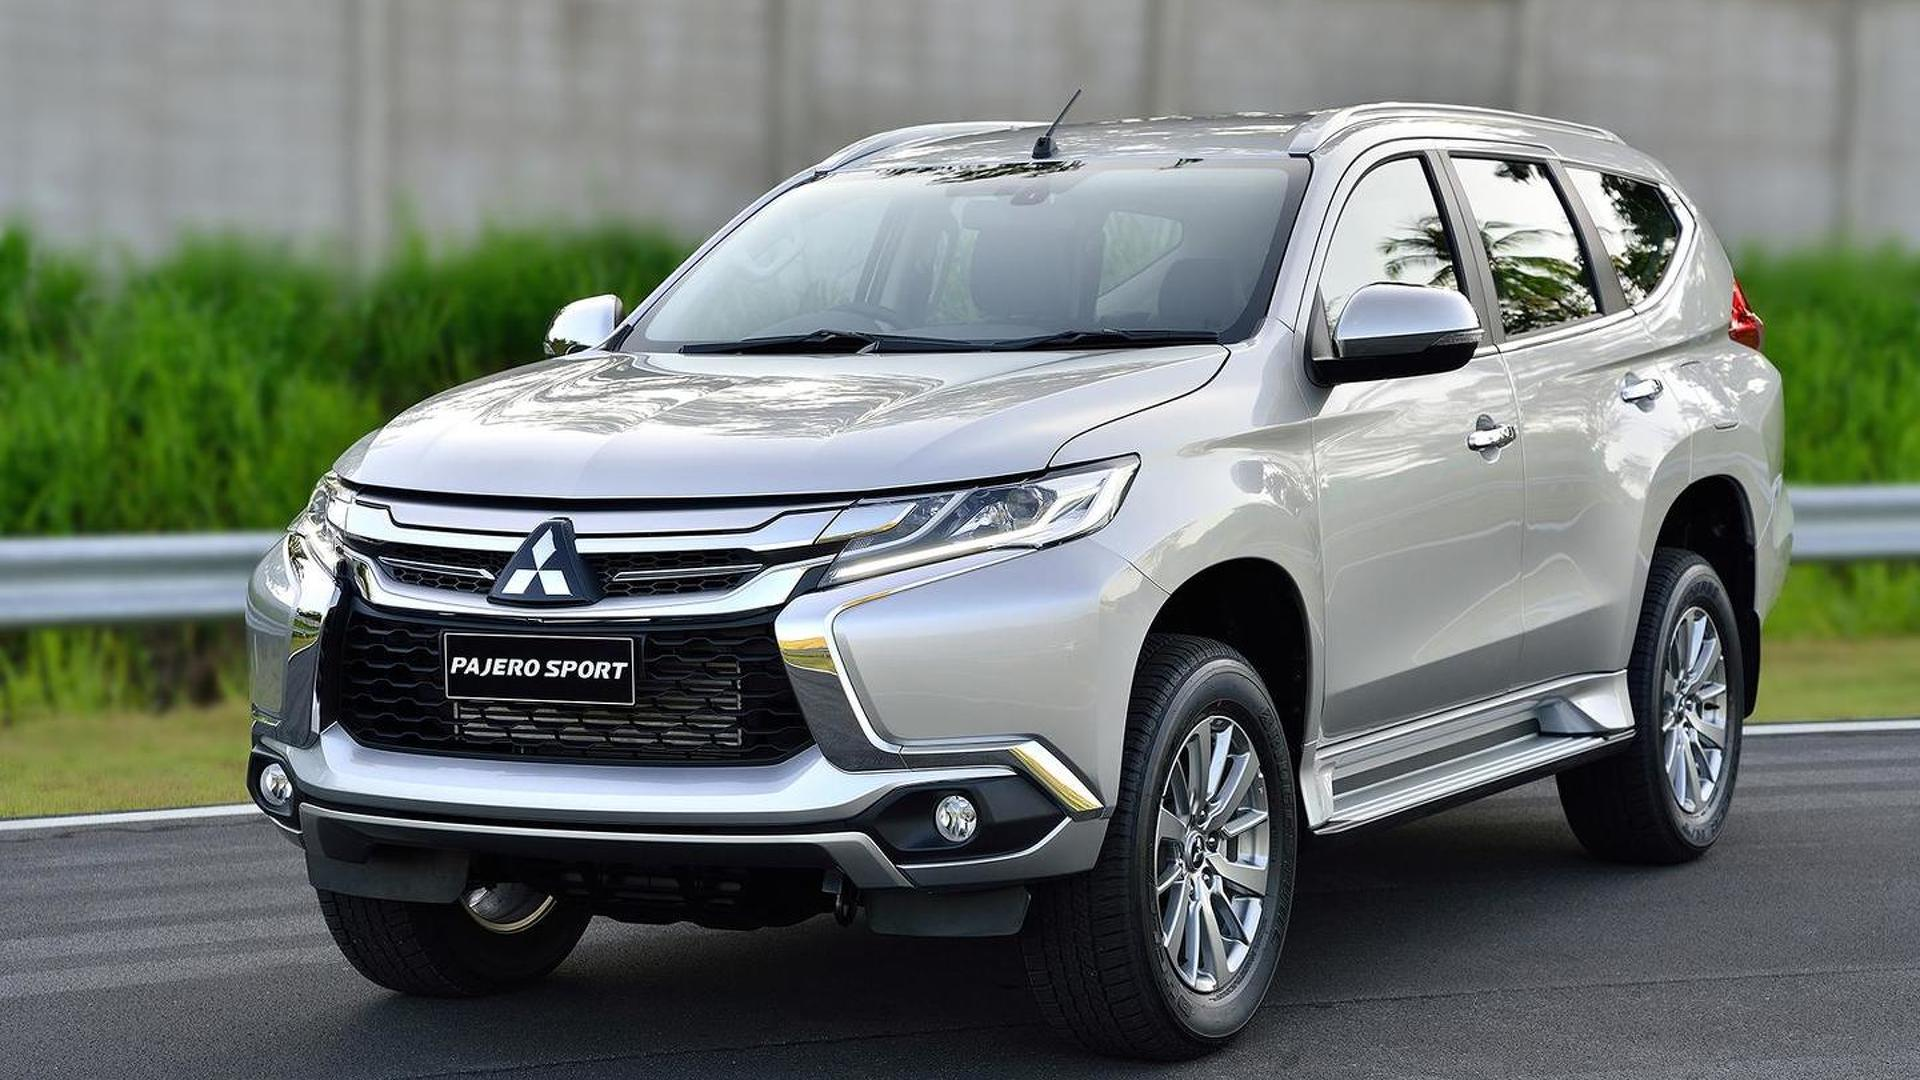 2016 mitsubishi pajero sport officially unveiled [96 photos video]New Mitsubishi Pajero 2016 #5